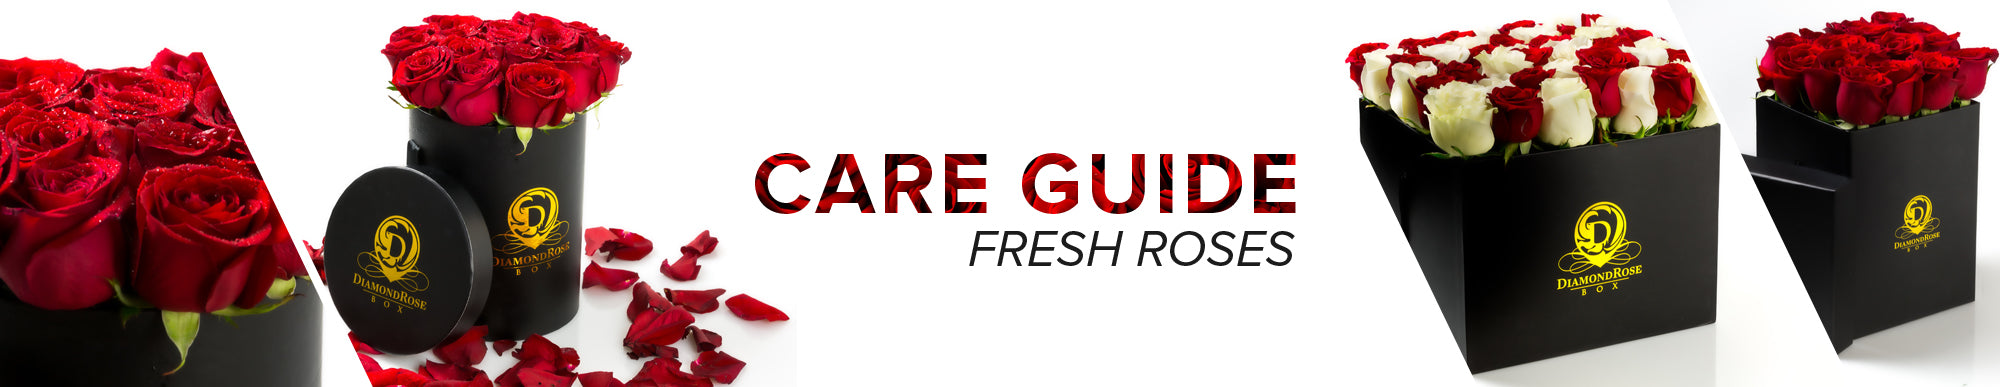 Care Guide Fresh Roses